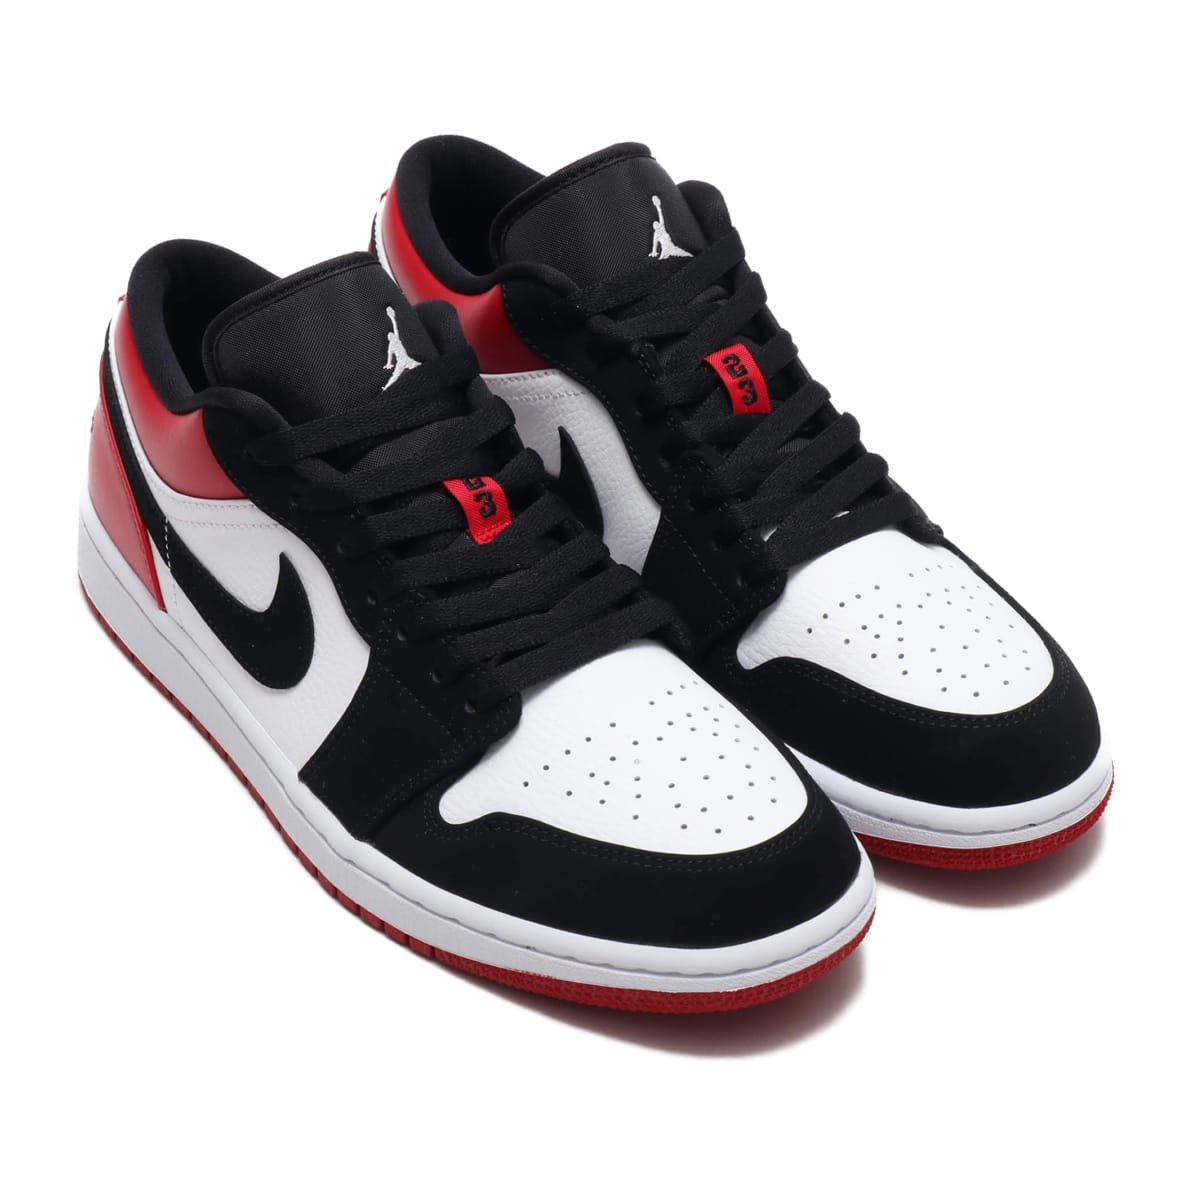 NIKE AIR JORDAN 1 LOW WHITE/BLACK-GYM RED 19HO-S_photo_large